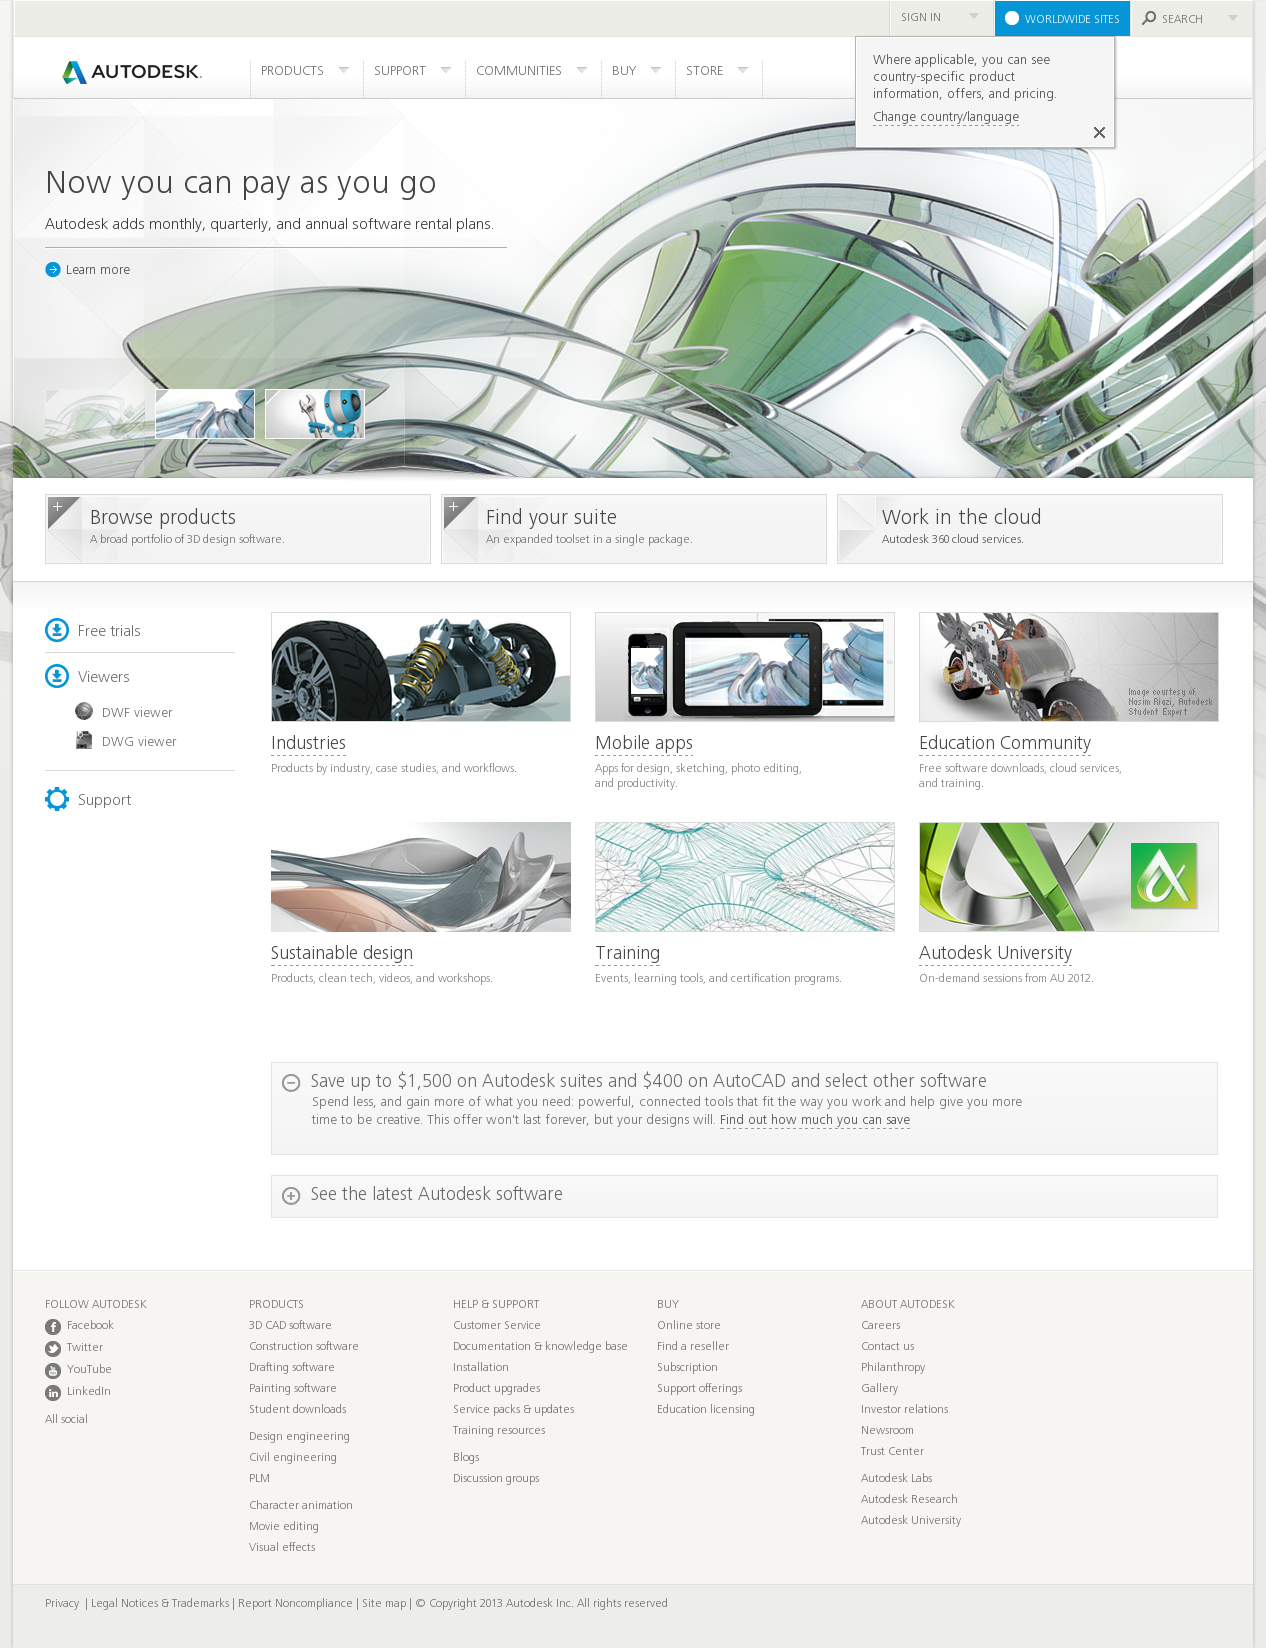 Autodesk Competitors, Revenue and Employees - Owler Company Profile